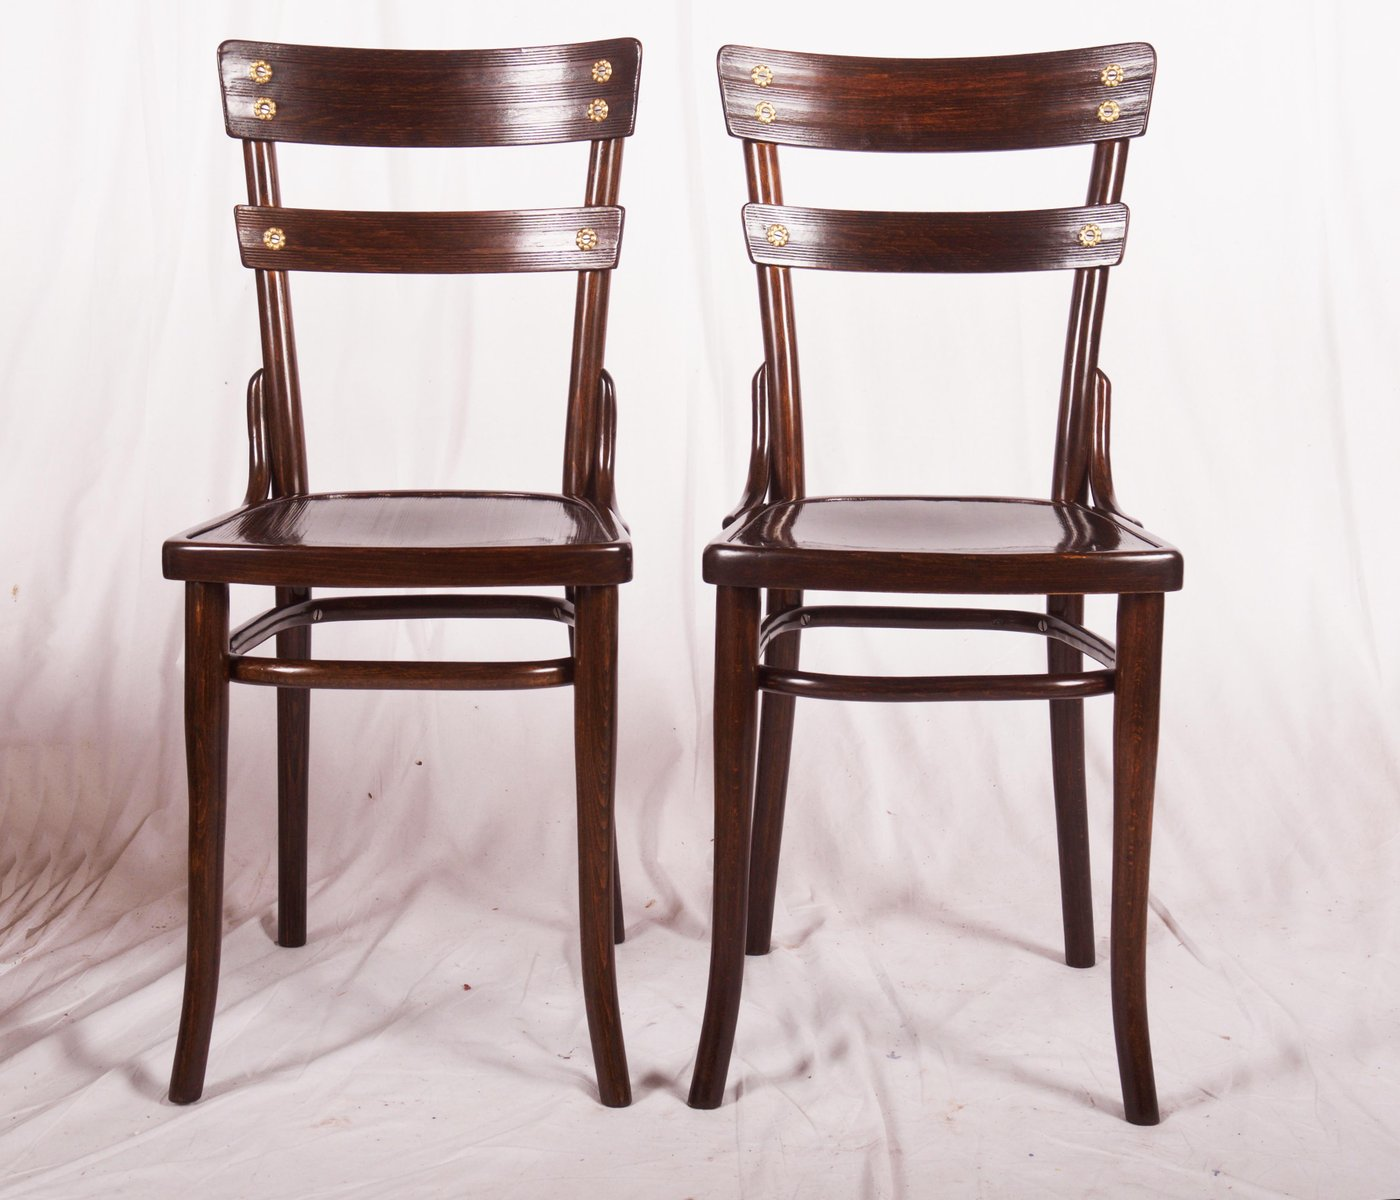 Antique dining room chair 1900 for sale at pamono for 8 dining room chairs